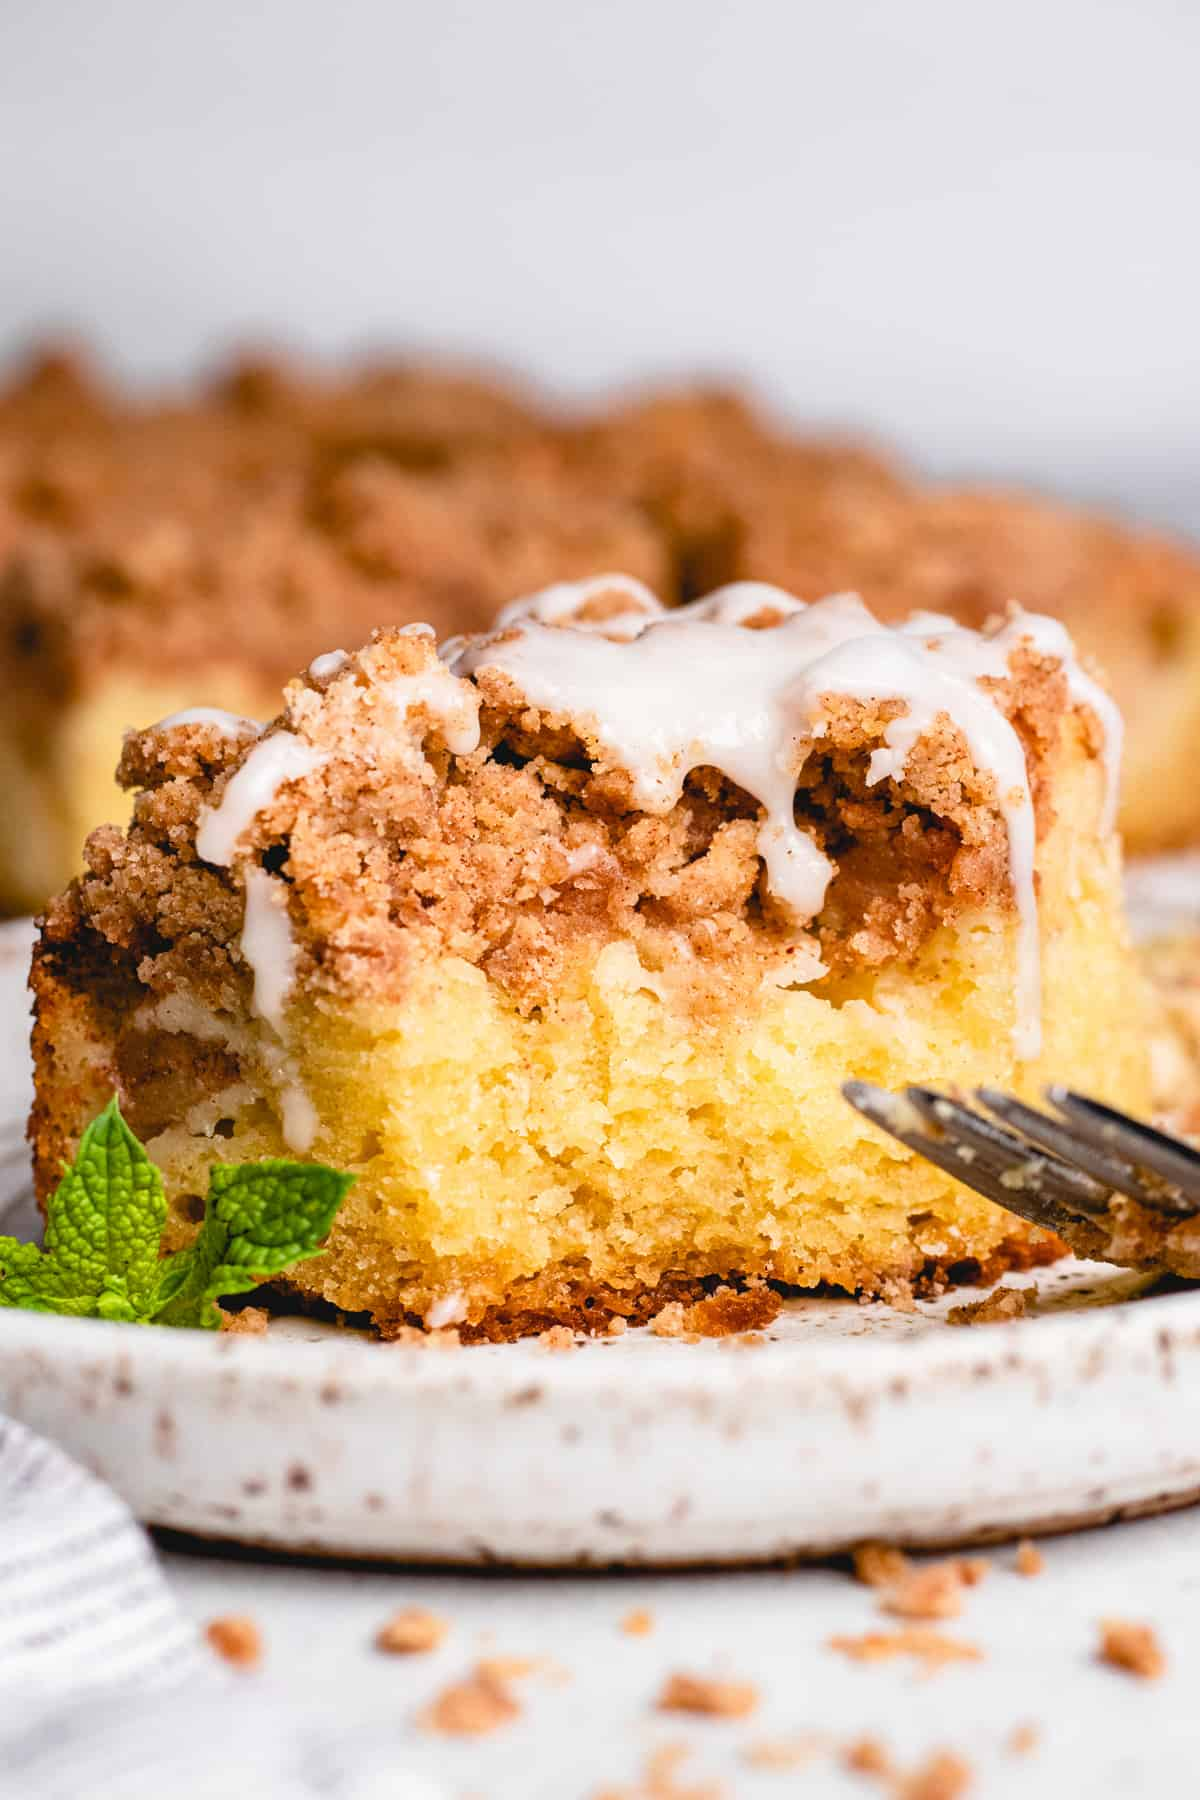 A slice of apple crumb cake on a plate with a fork and mint leaves.